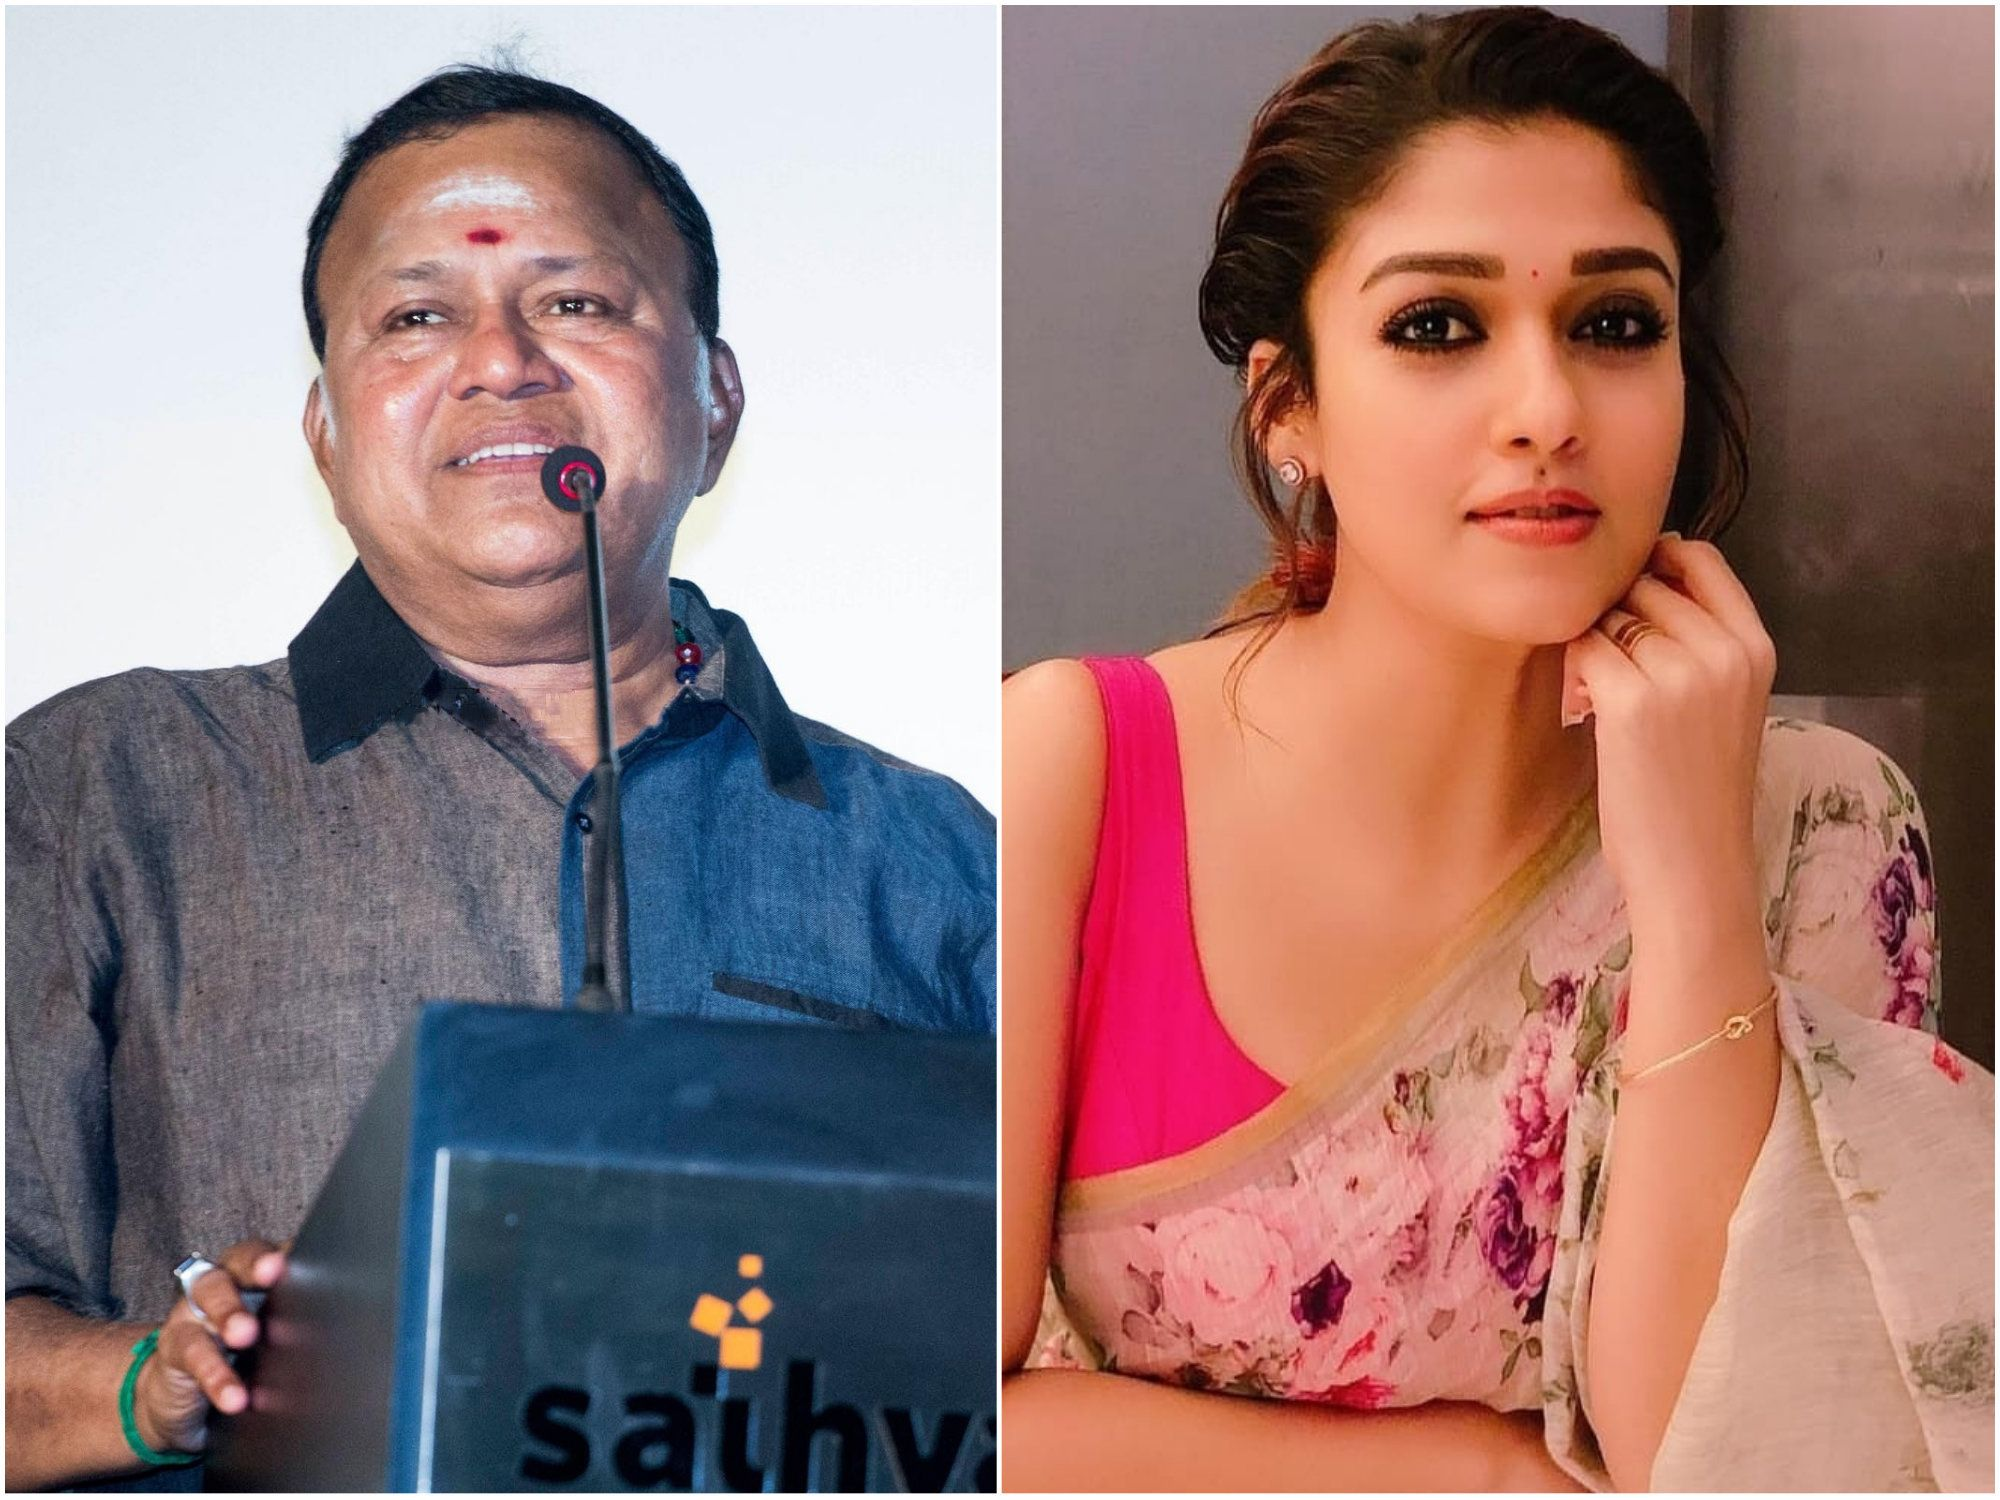 Actor Radha Ravi Suspended From DMK After Sexist Remarks On Nayanthara, Joke On Pollachi